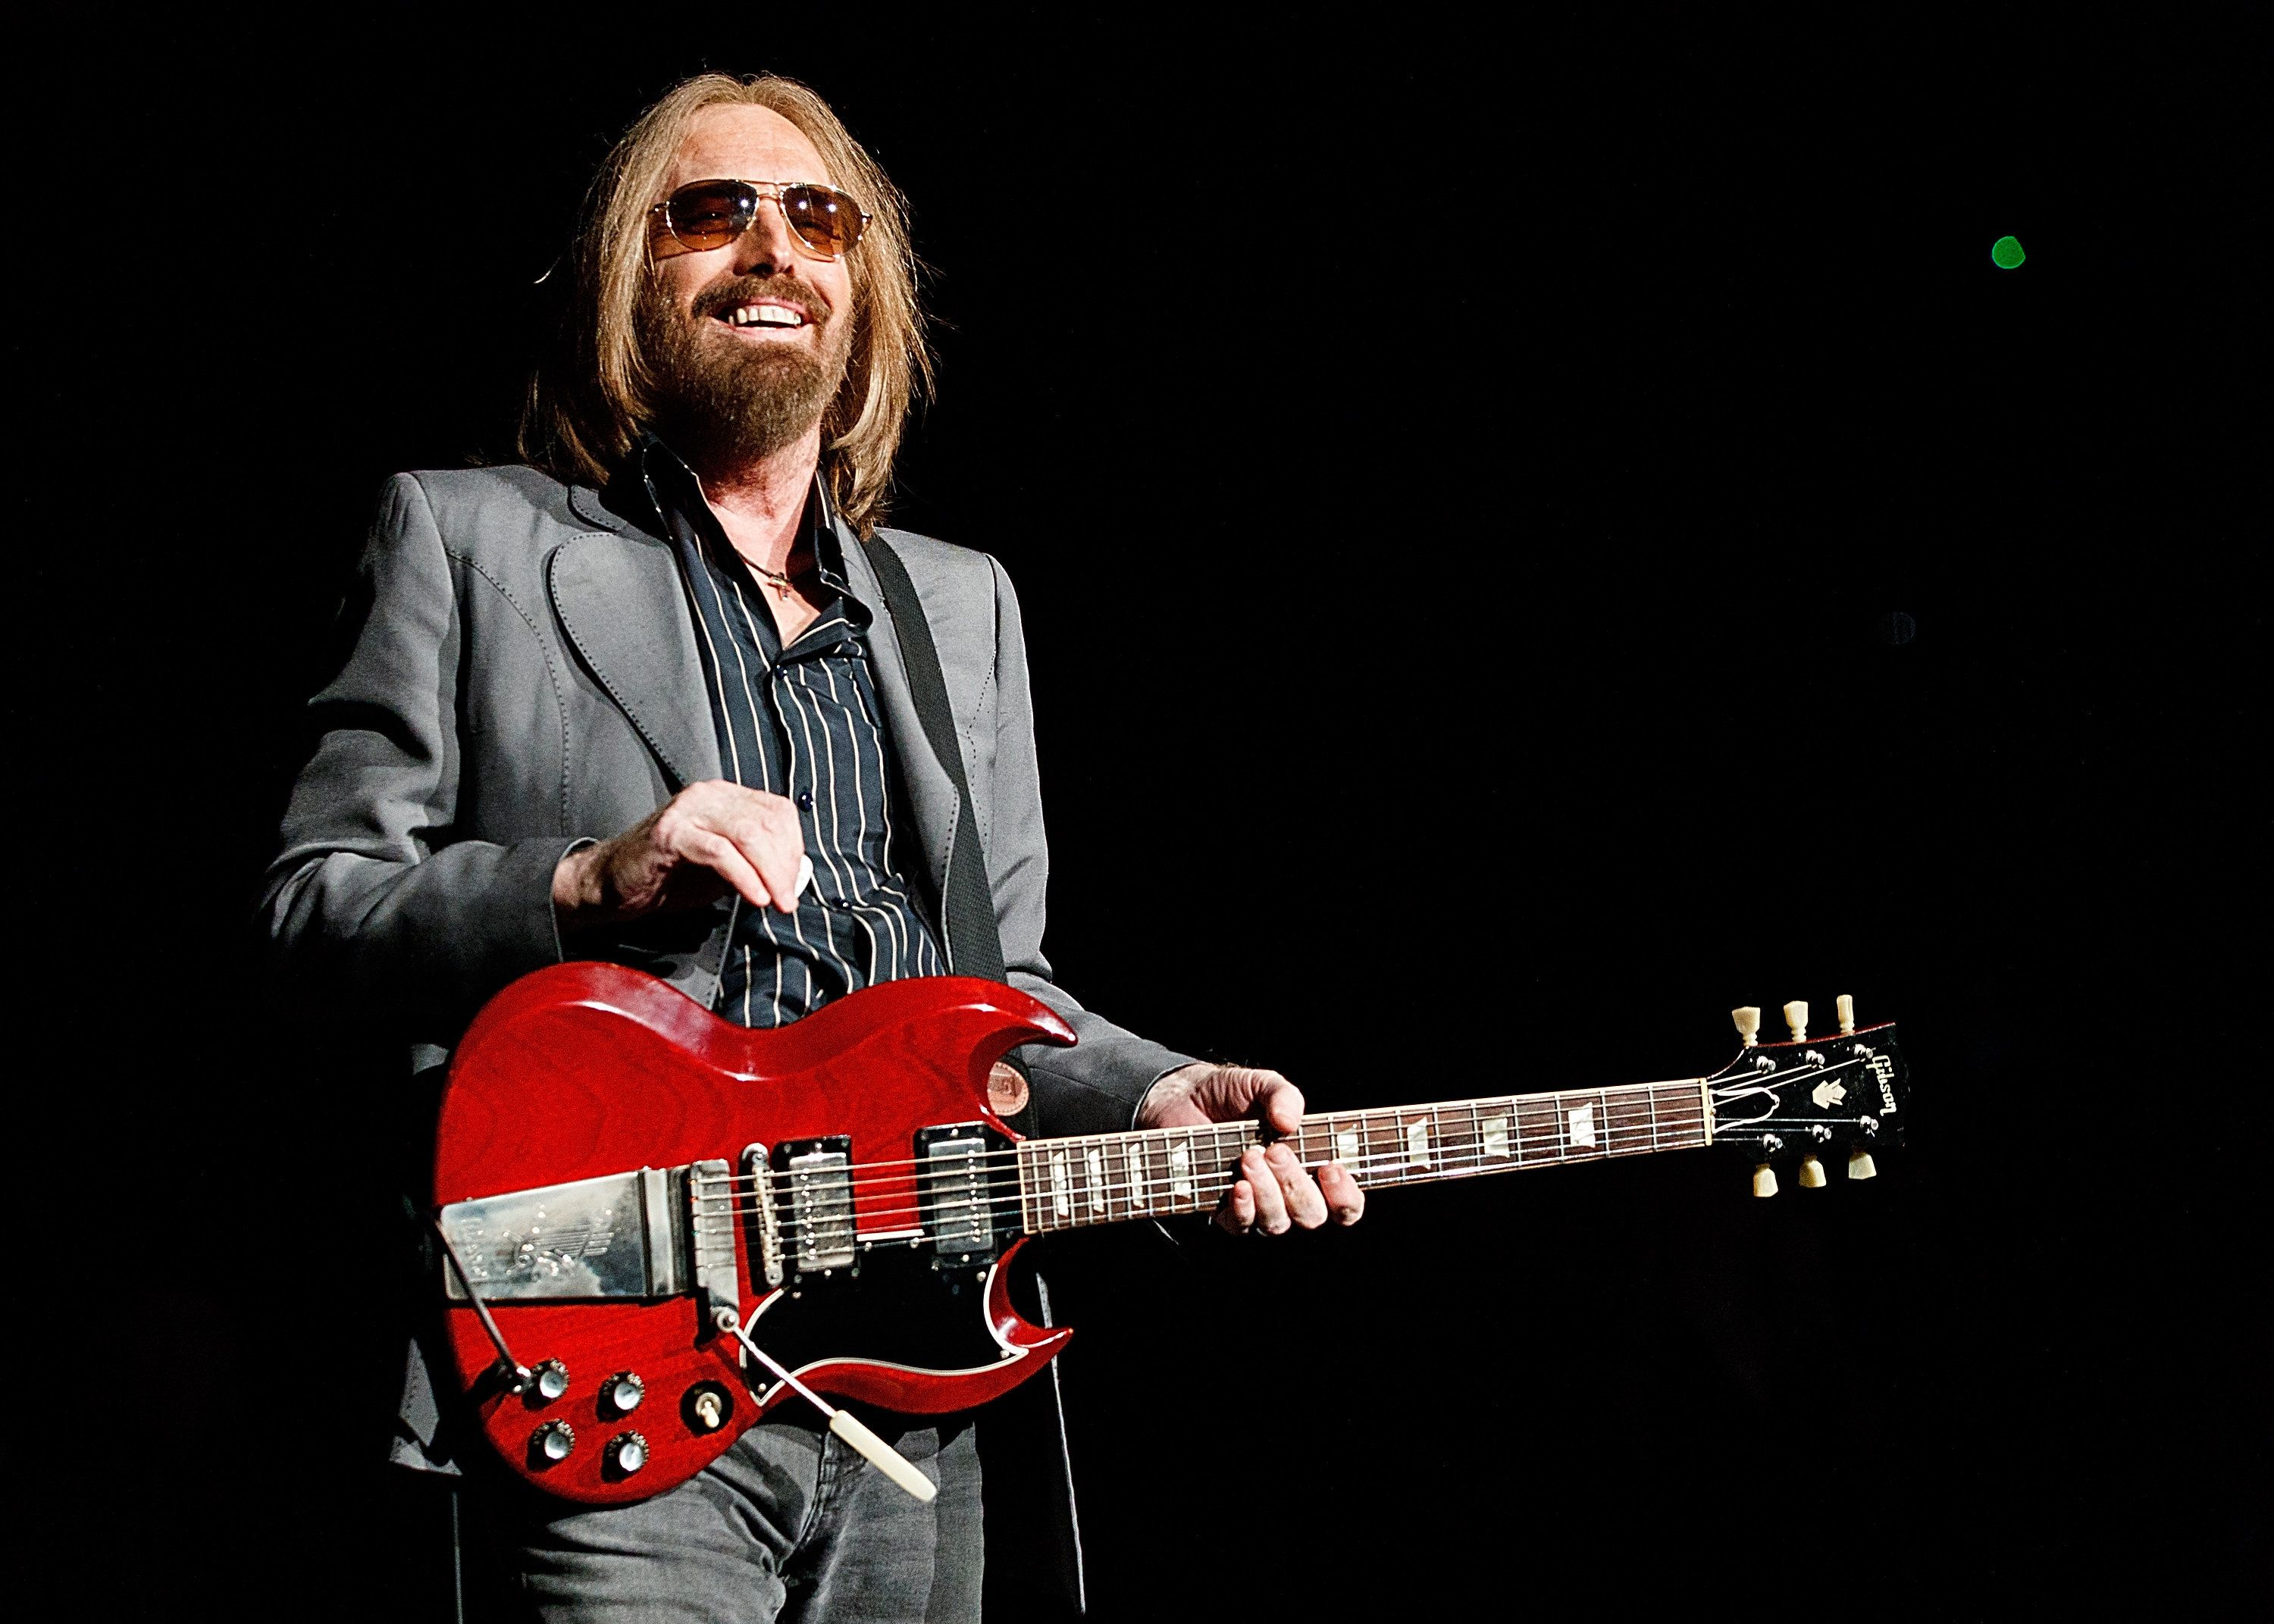 Tom Petty's Daughter Kimberly Violette Fumes At Media Over Initial False Death